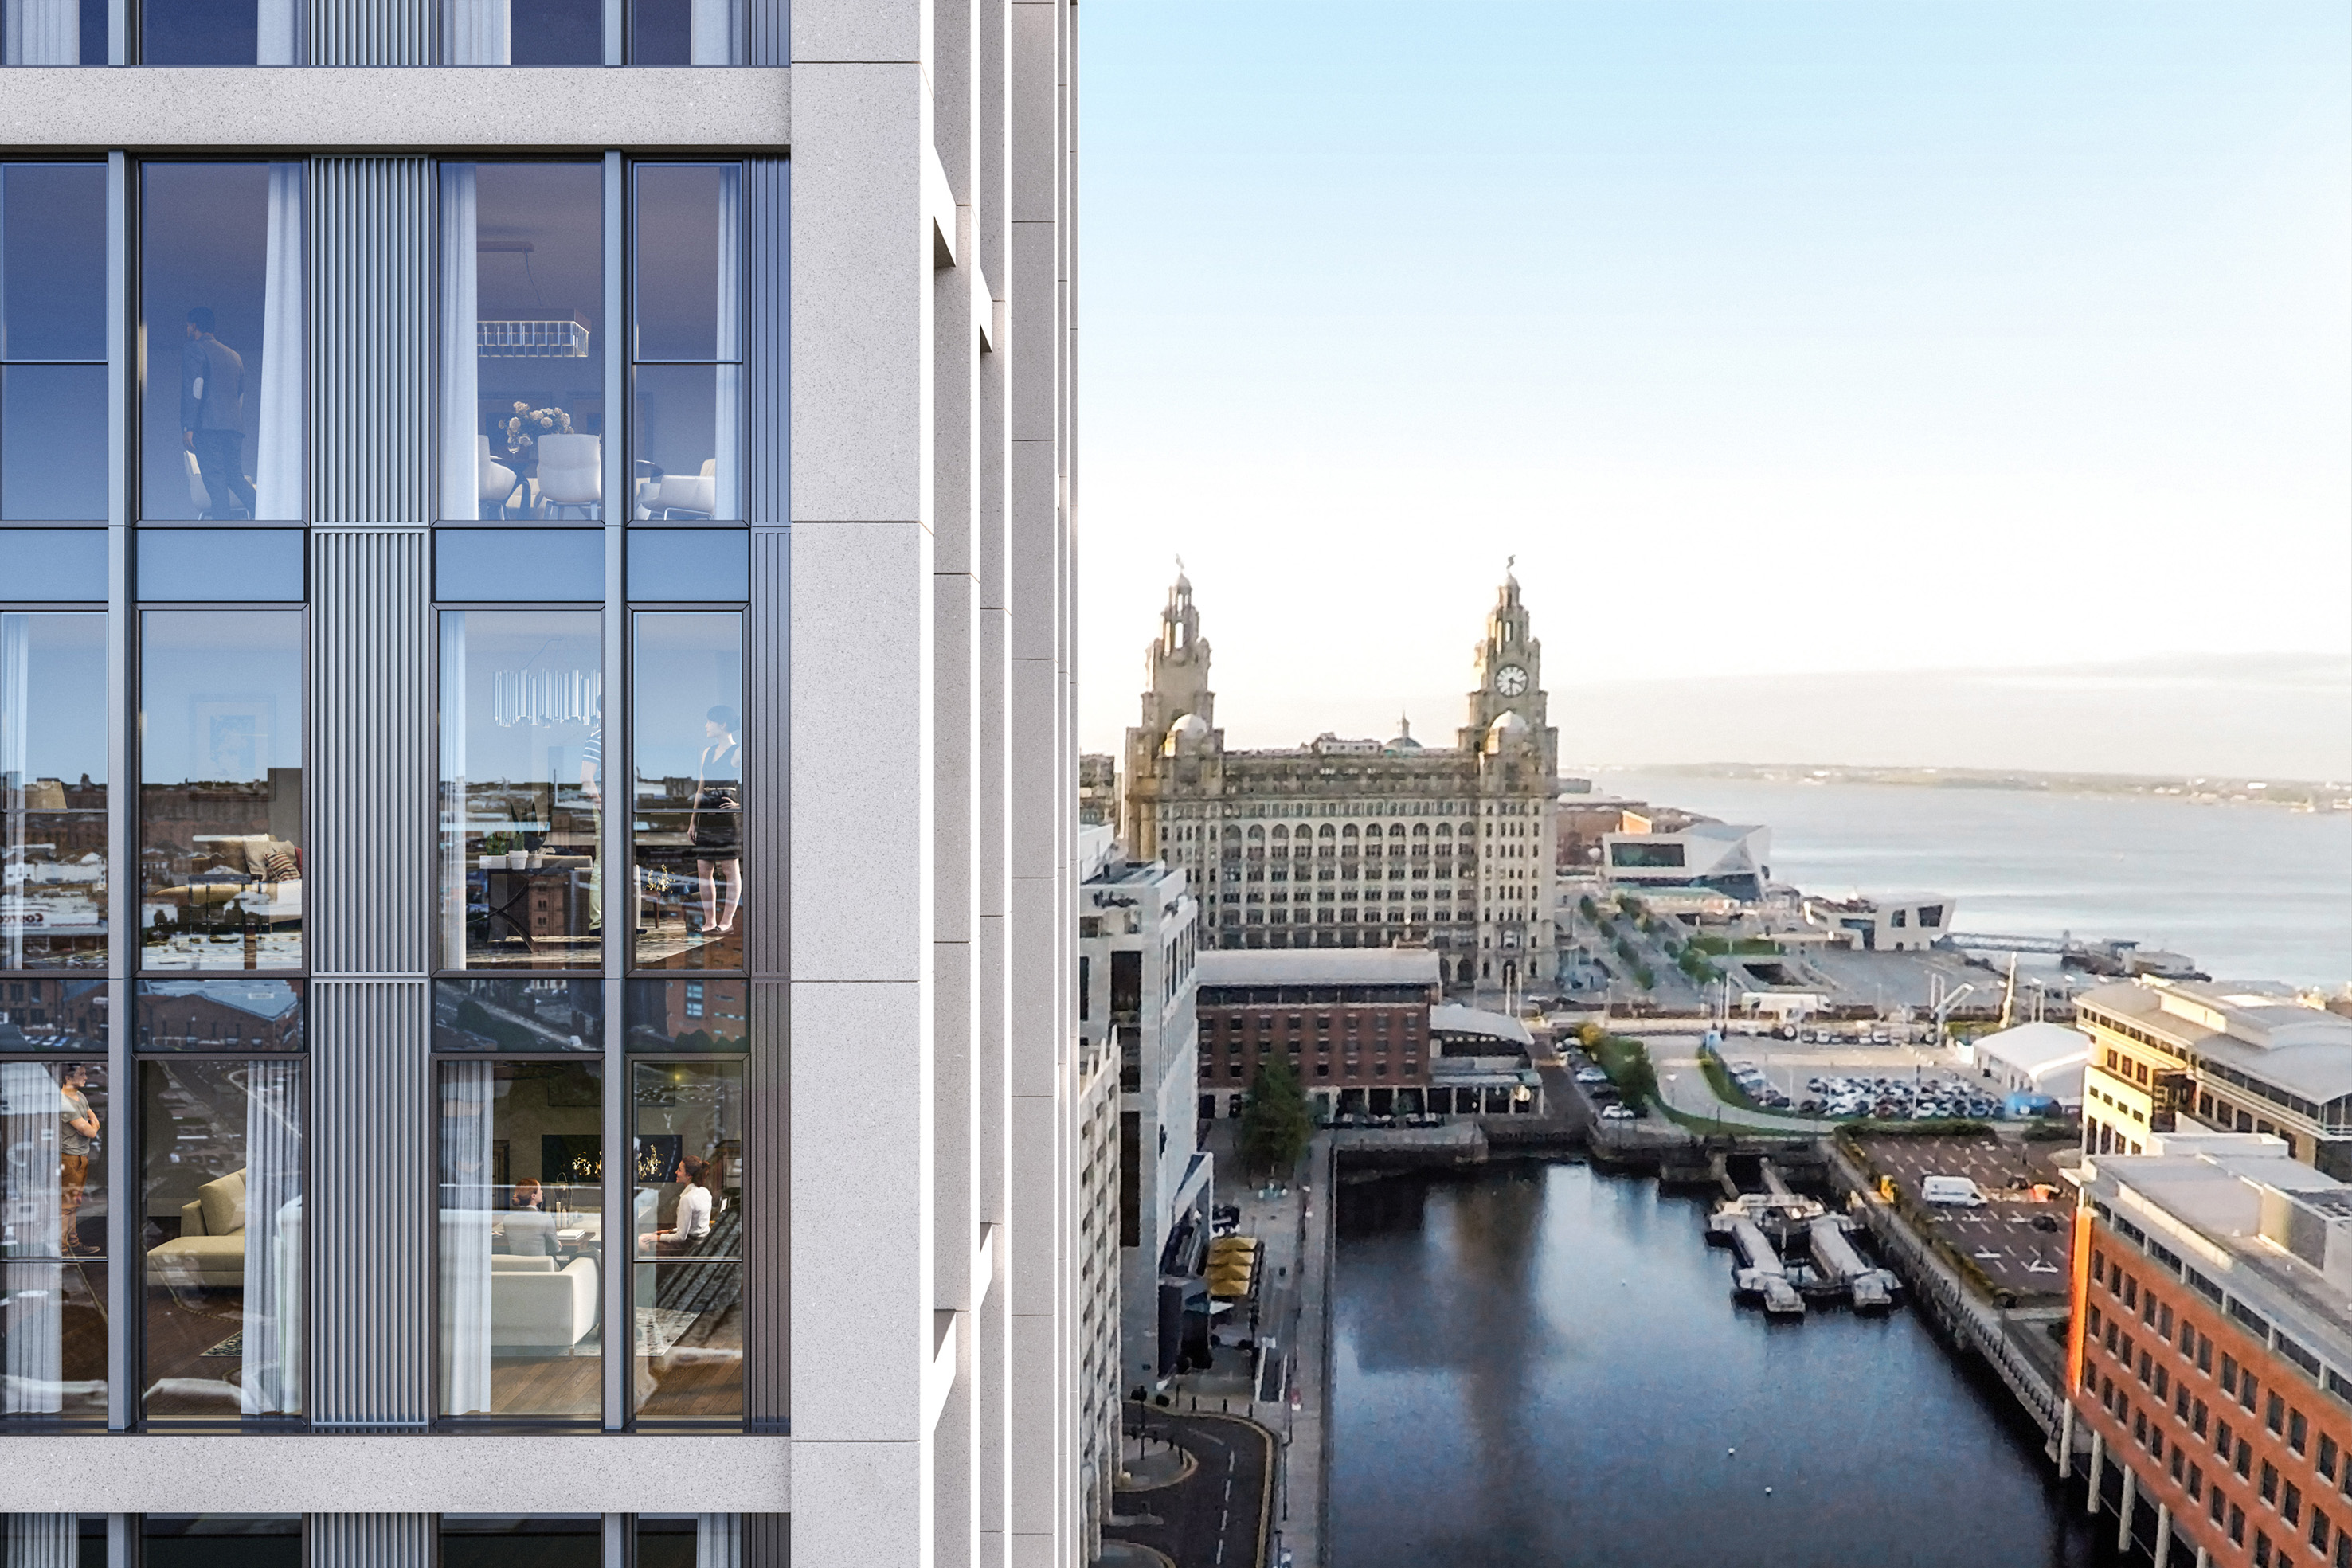 Watch Inside The Lexington: Liverpools 82 million waterfront tower video